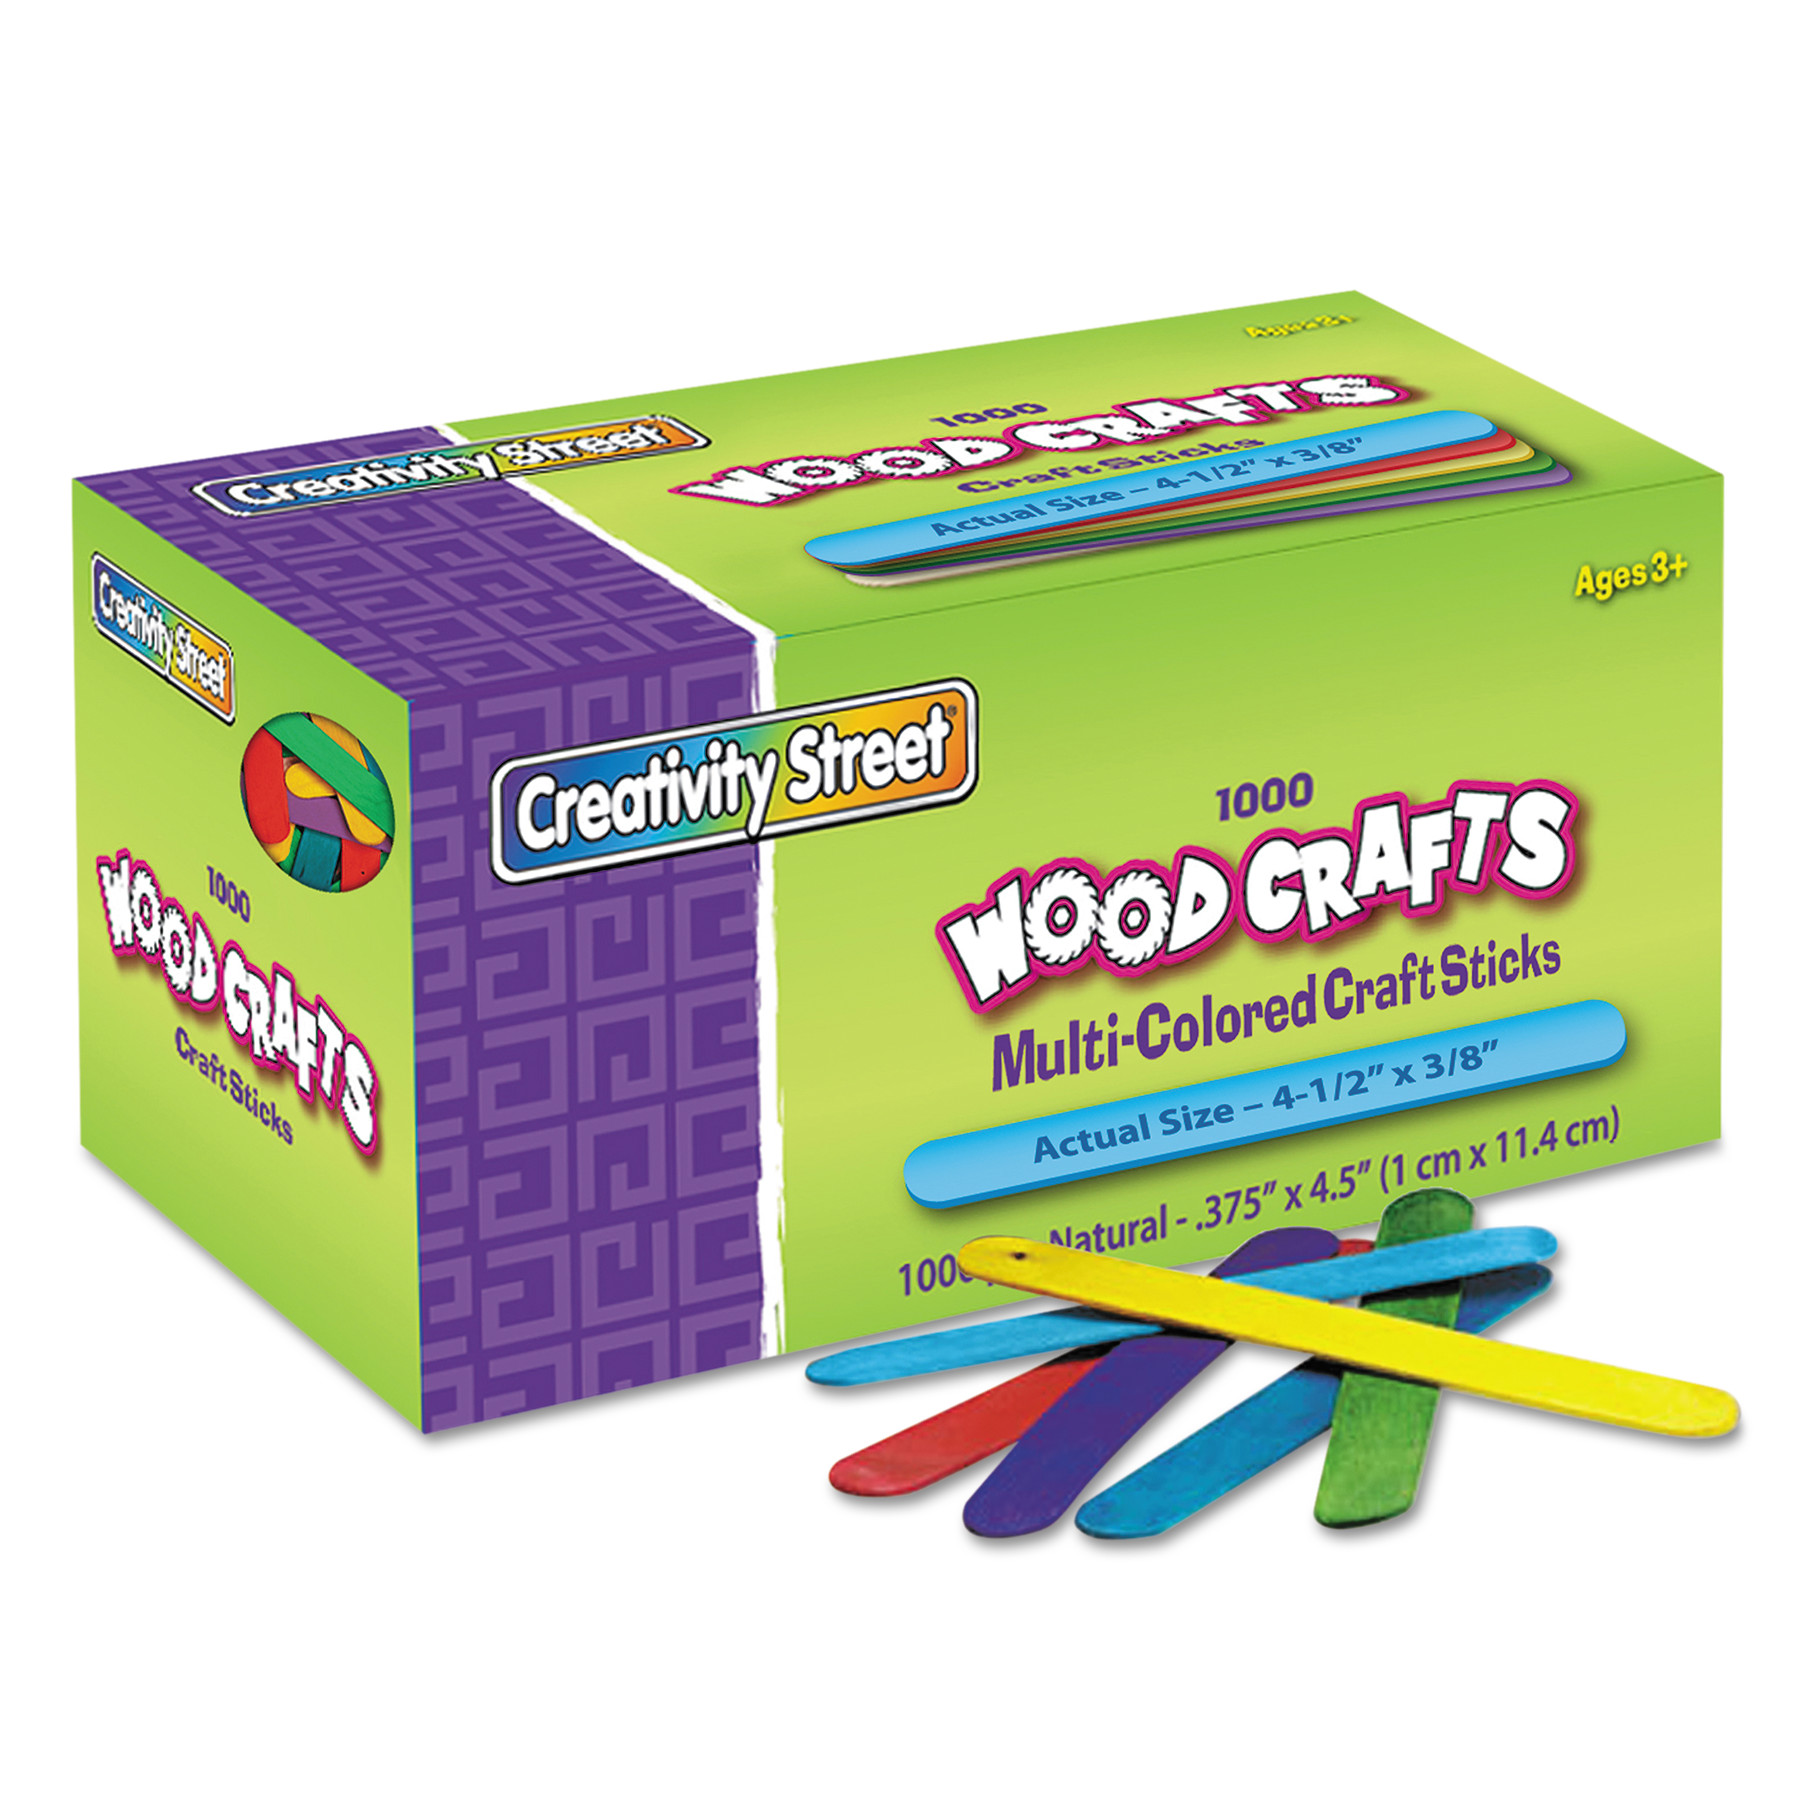 Chenille Kraft Colored Wood Craft Sticks, 4 1/2 x 3/8, Wood, Assorted, 1000/Box